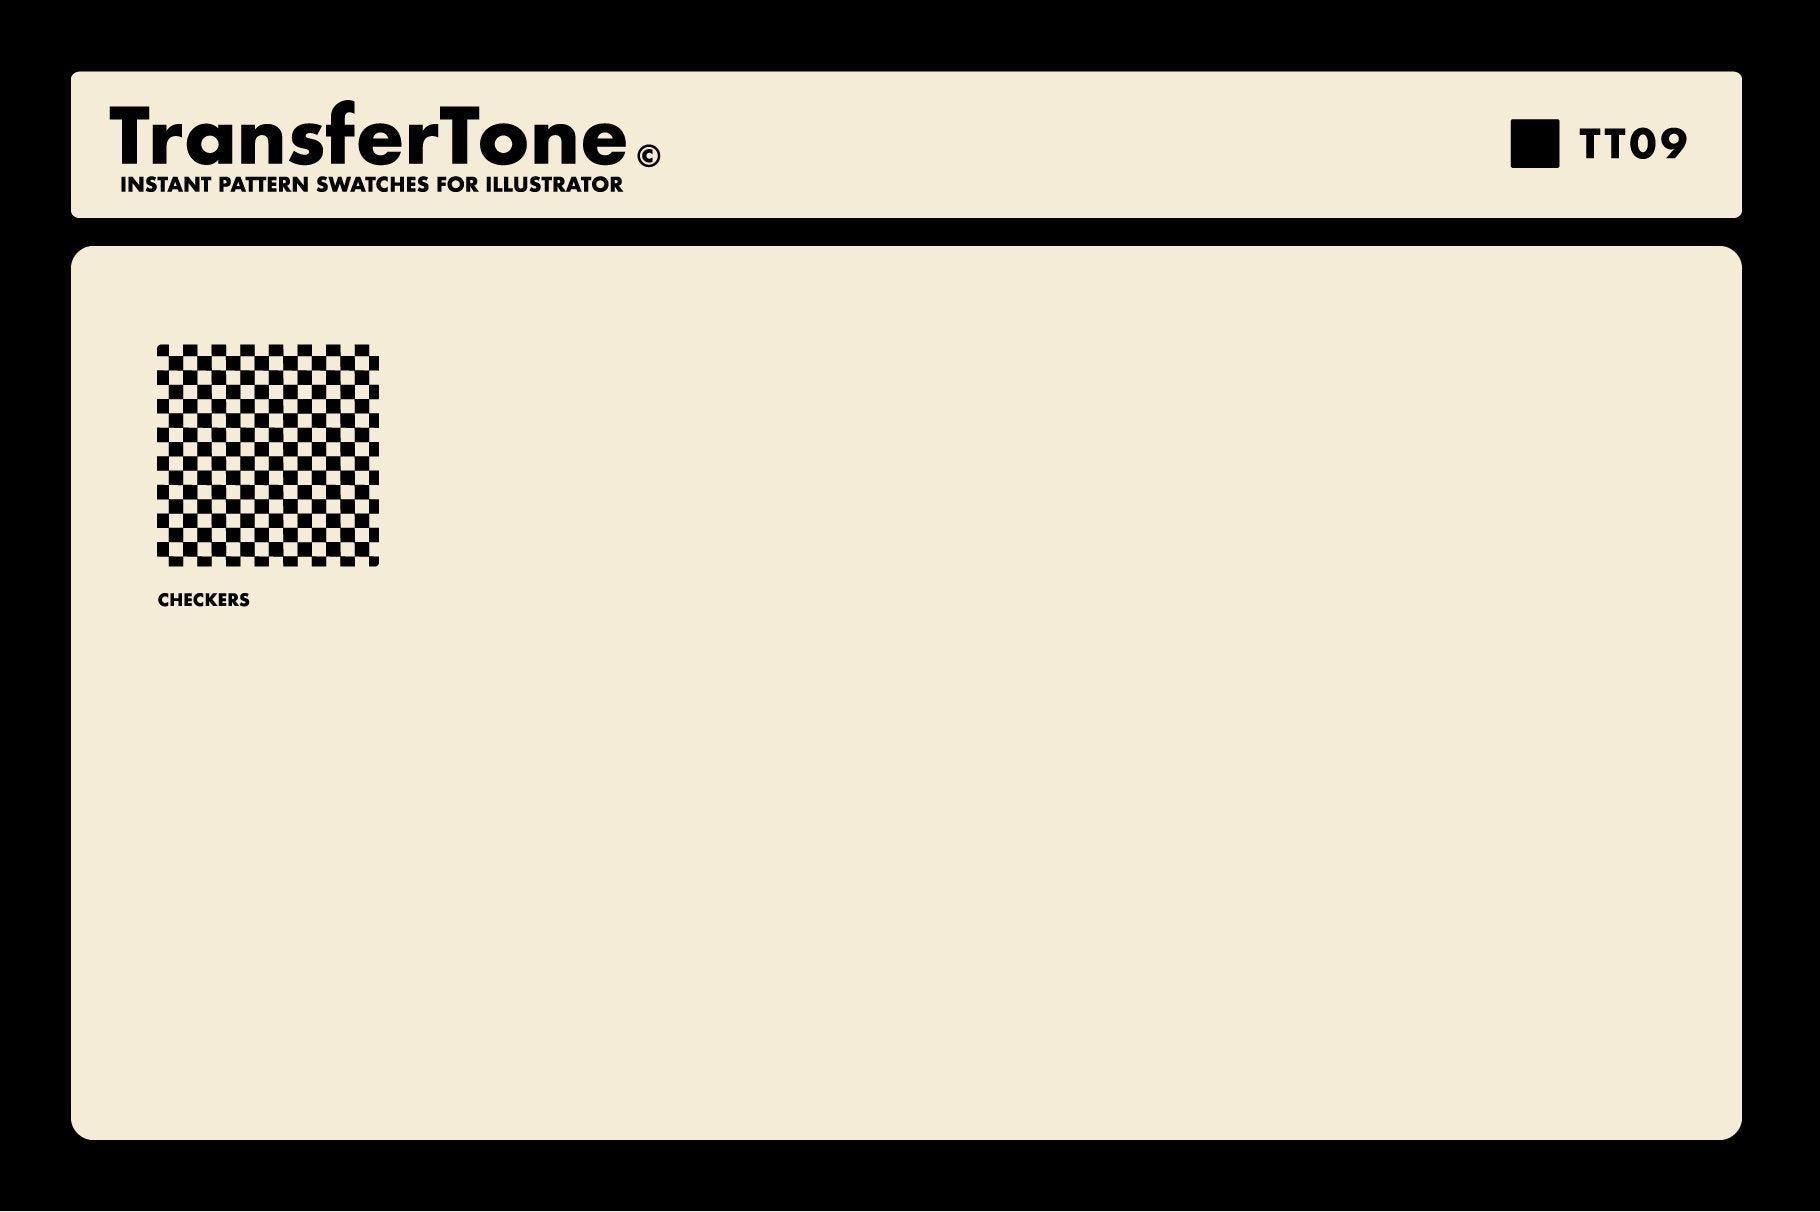 TransferTone | Dry Transfer Patterns for Adobe Illustrator Illustrator Brushes RetroSupply Co.